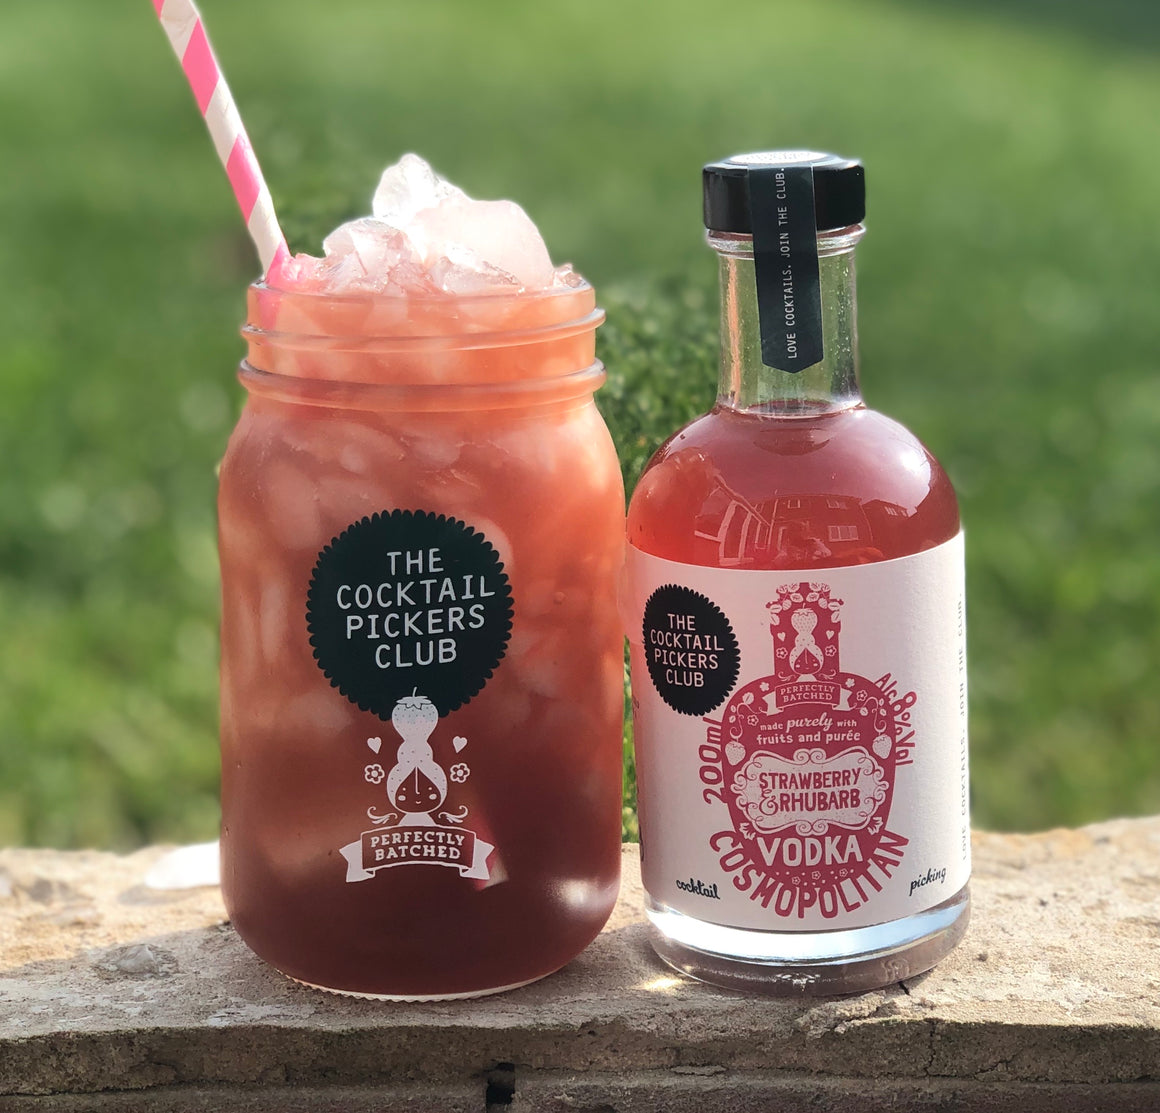 'Mini Pickers' Strawberry and Rhubarb Vodka Cosmopolitan 200ml PLUS jar!